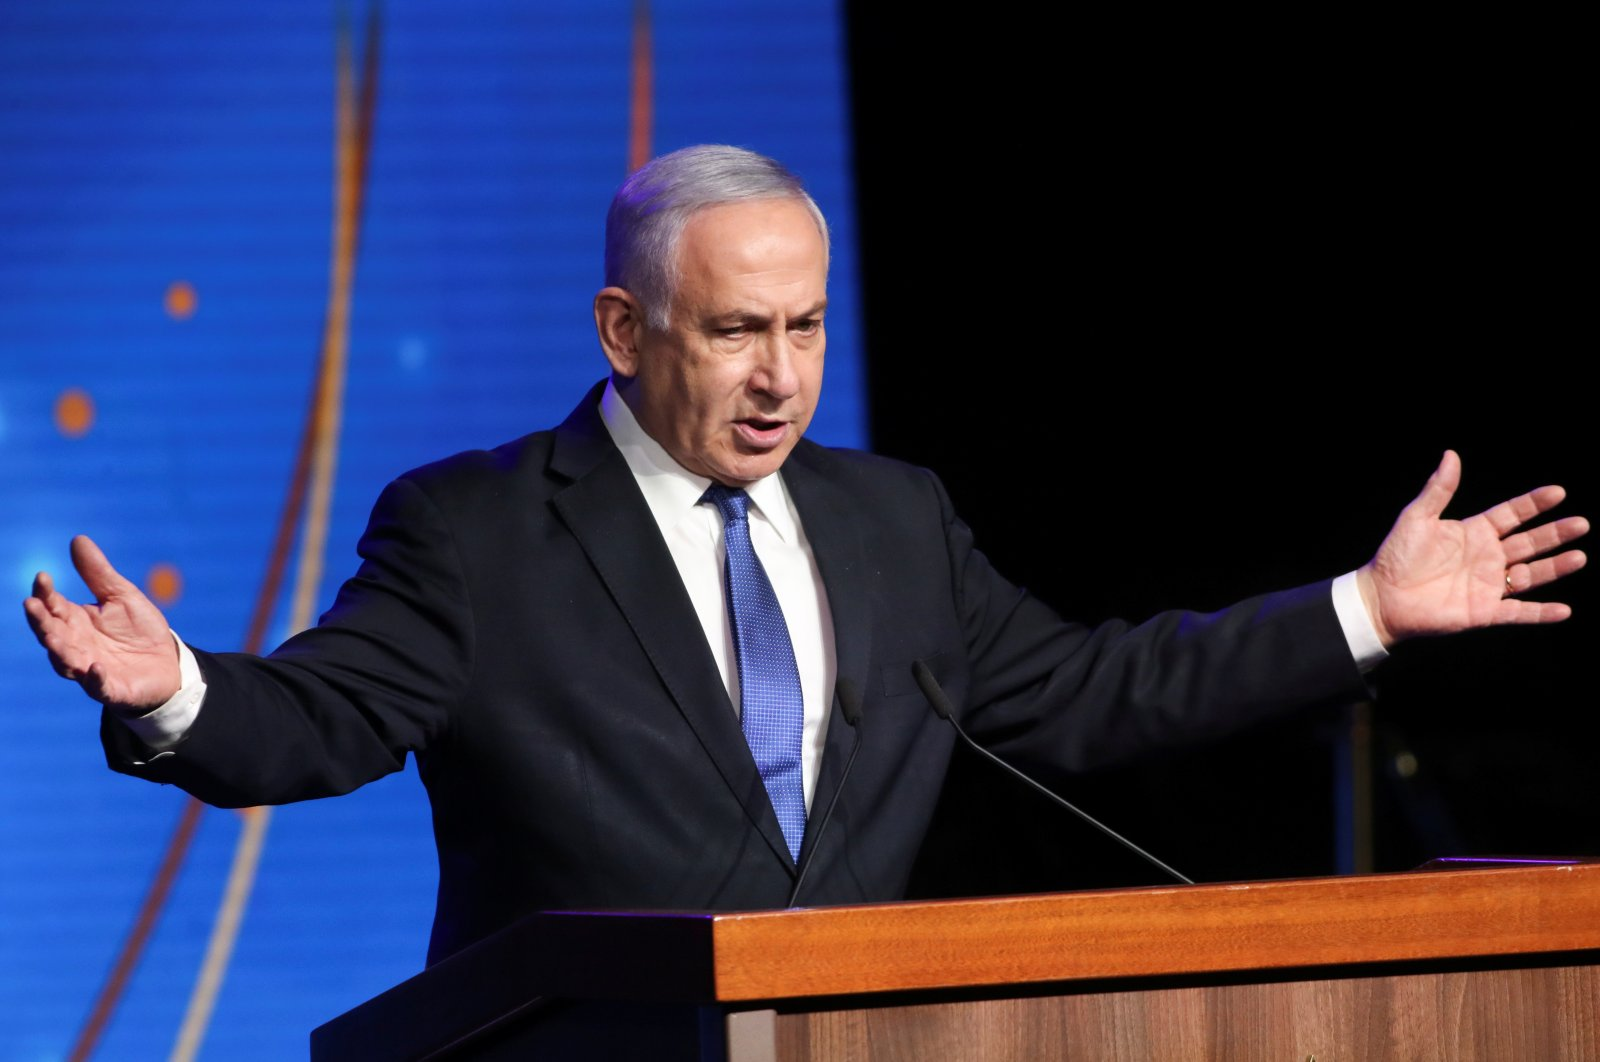 Israeli Prime Minister Benjamin Netanyahu speaks during a ceremony to show appreciation to the health sector for their contribution to the fight against the coronavirus disease in Jerusalem, Israel, June 6, 2021. (Reuters Photo)